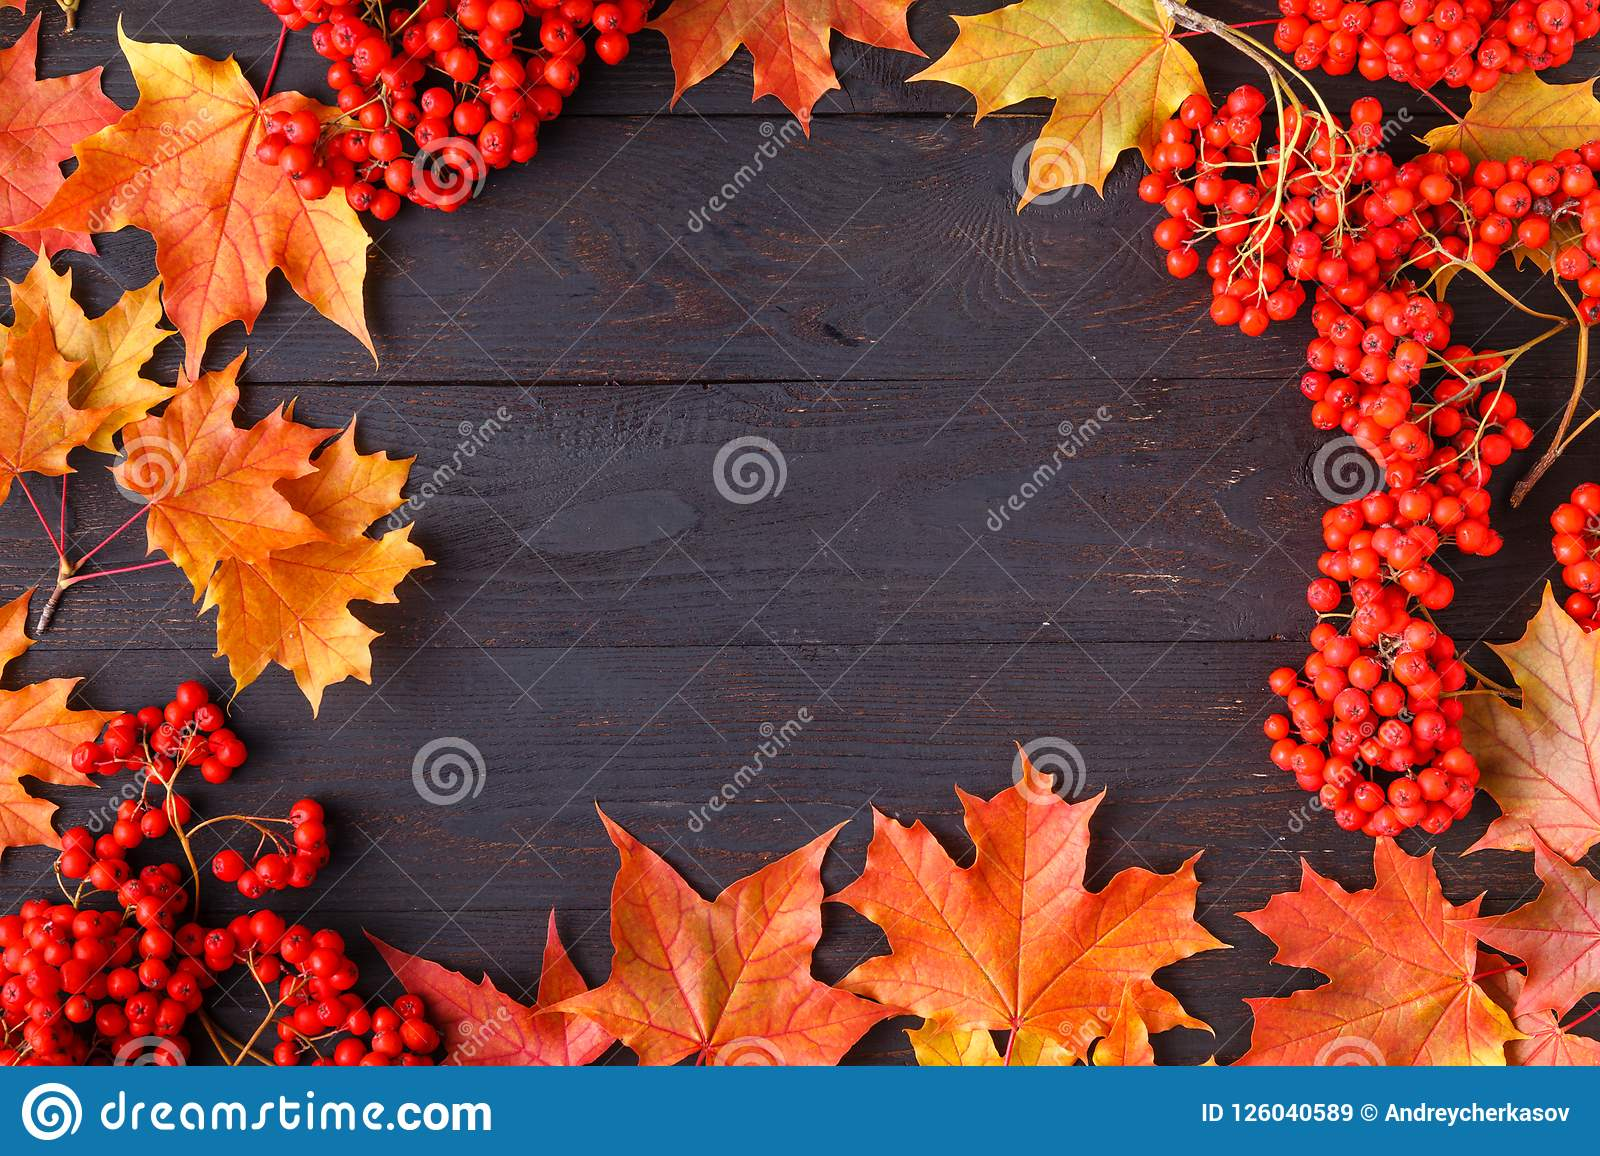 bright autumn leaves and text generic fall background perfect for